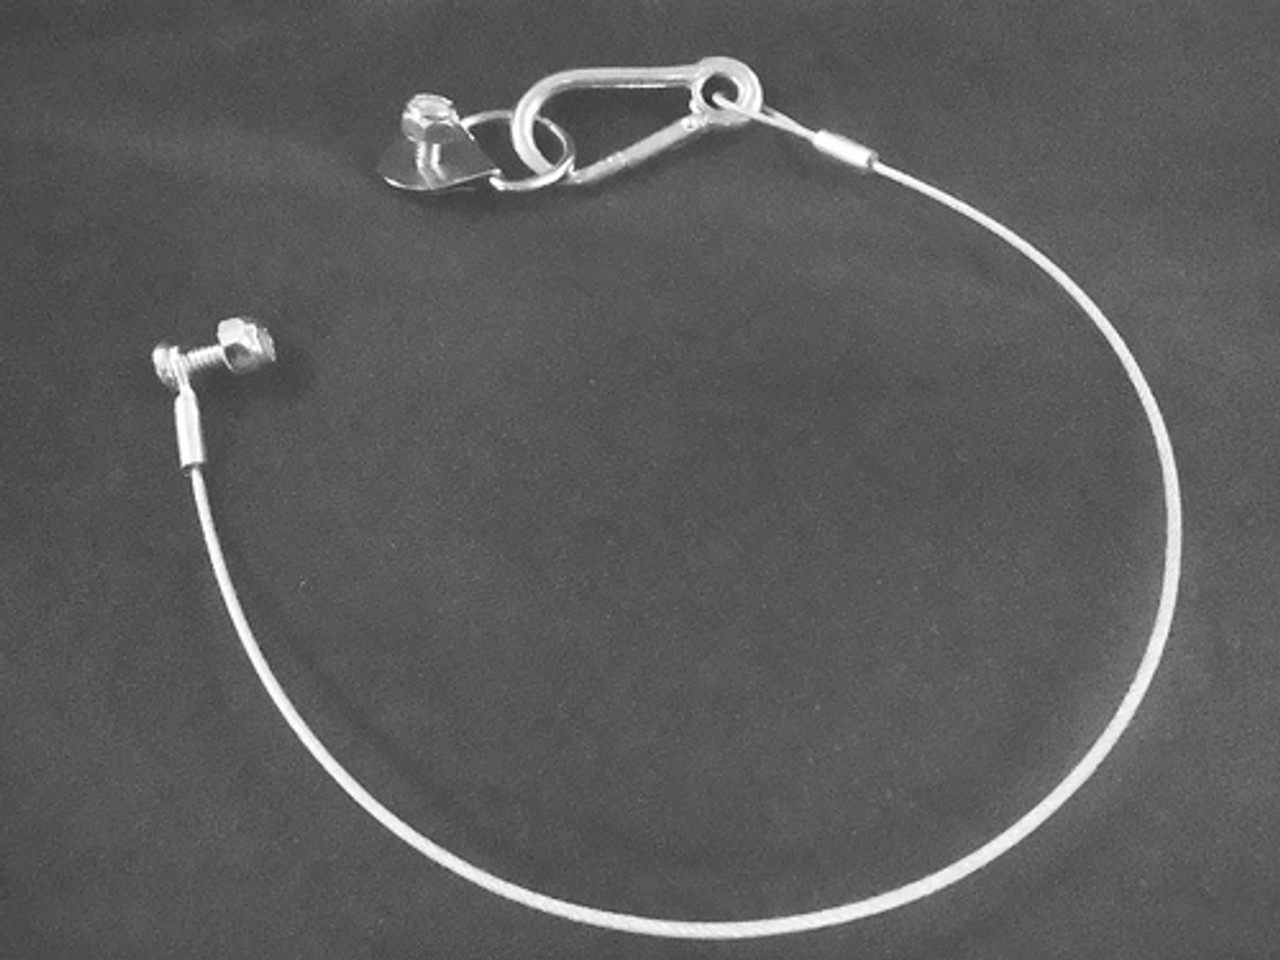 Optional Lid Cable Available